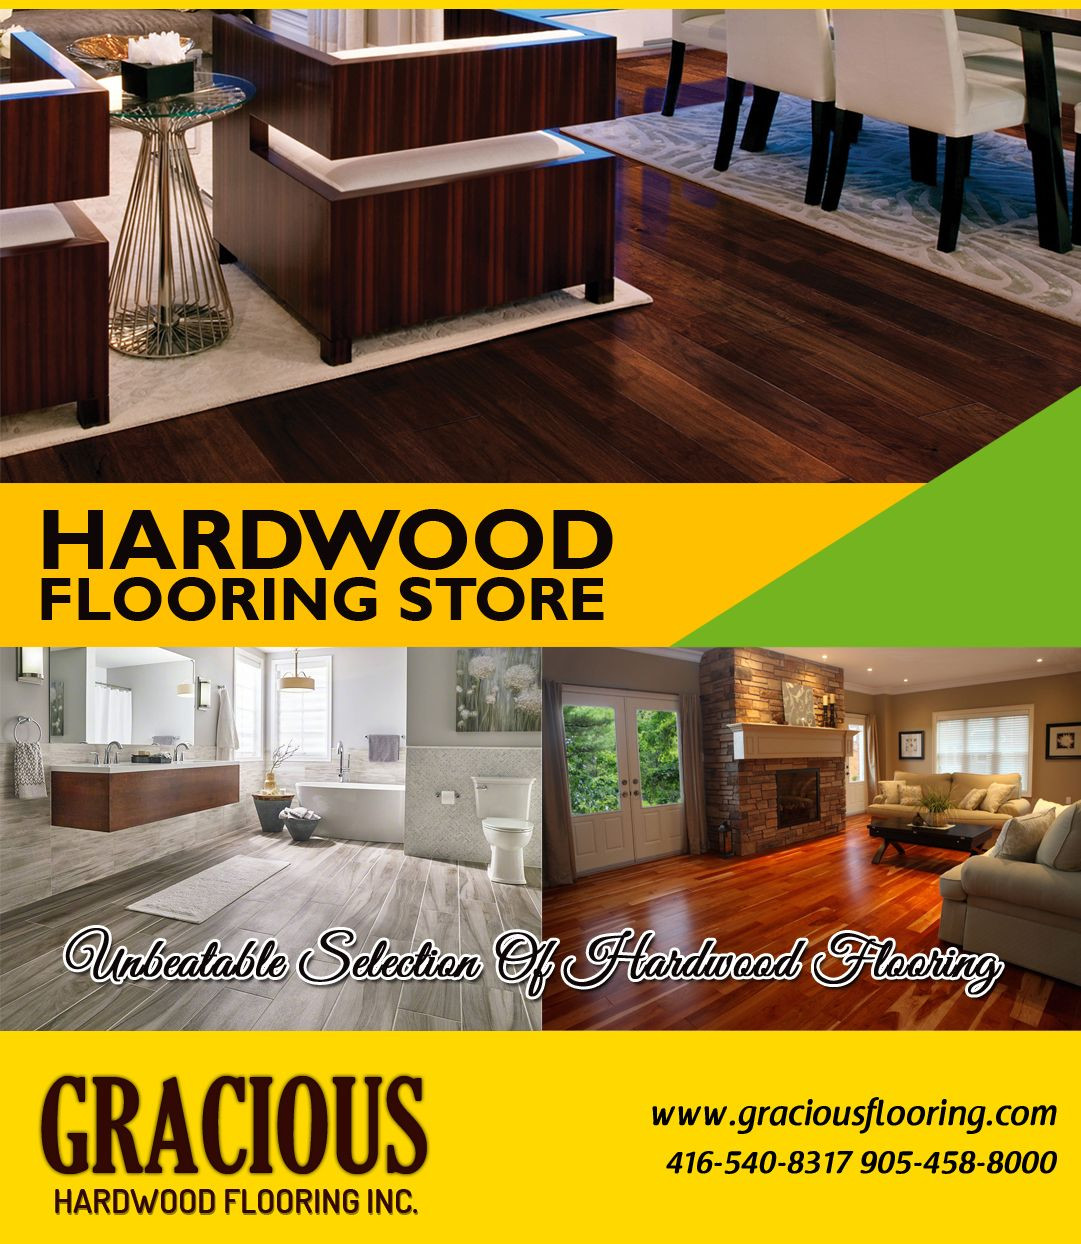 hardwood flooring cheap prices of hello guys if you want to purchase best and and designer hardwood throughout hello guys if you want to purchase best and and designer hardwood flooring in